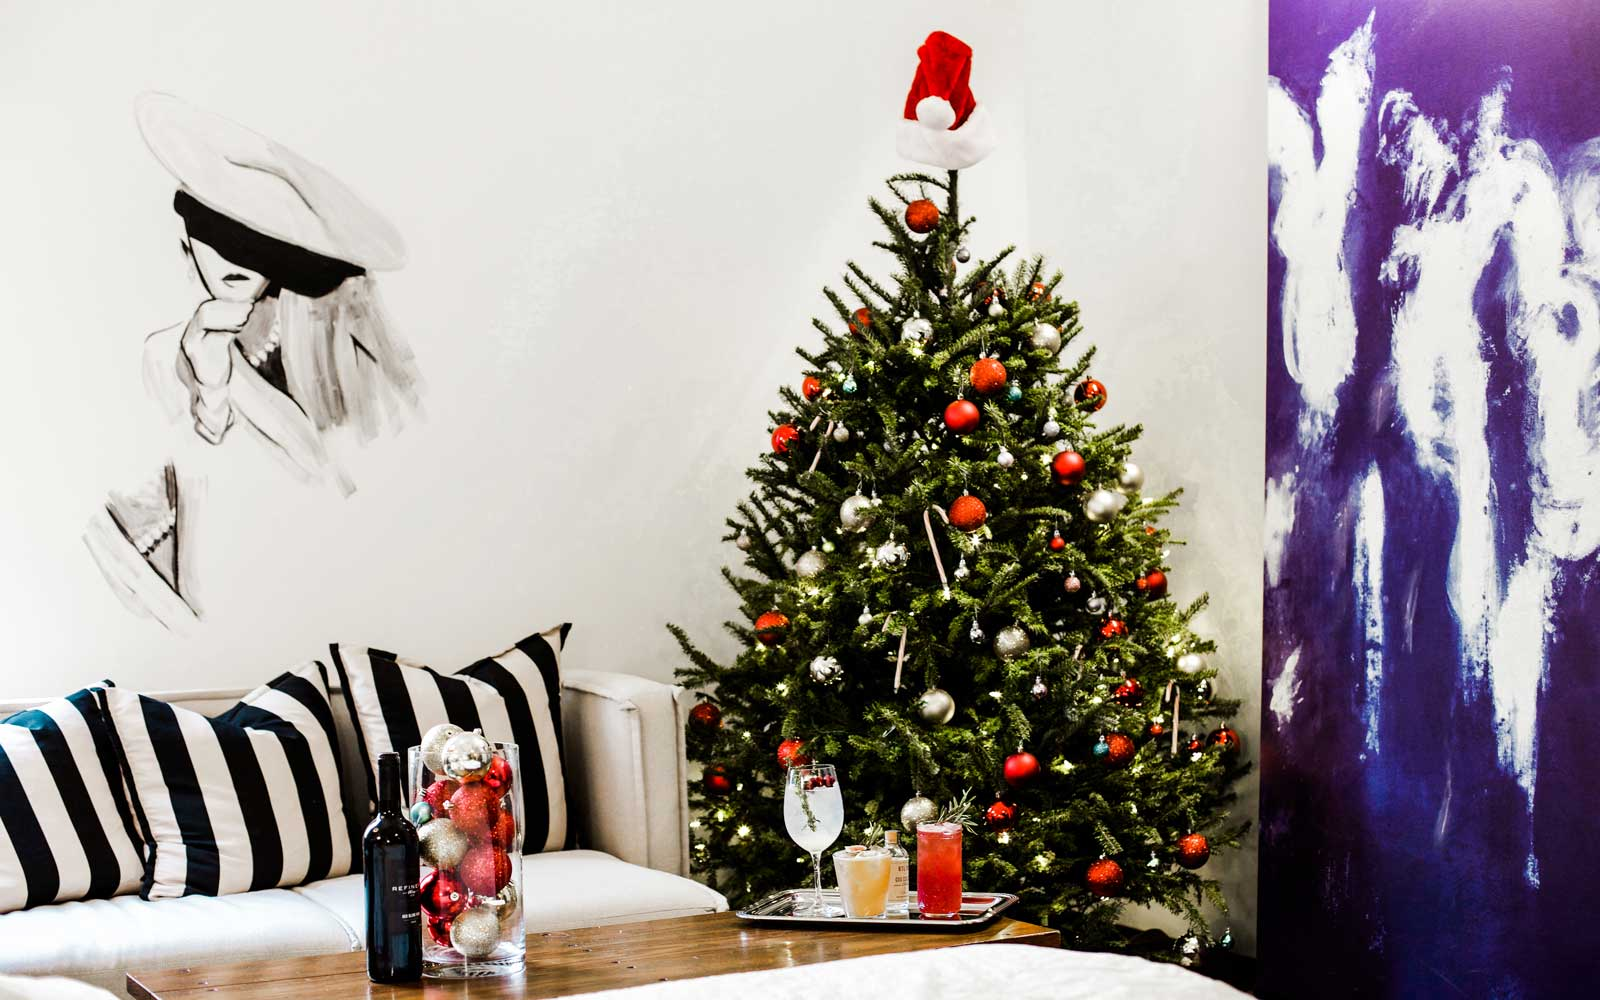 This Nyc Hotel Will Put A Christmas Tree In Your Room And